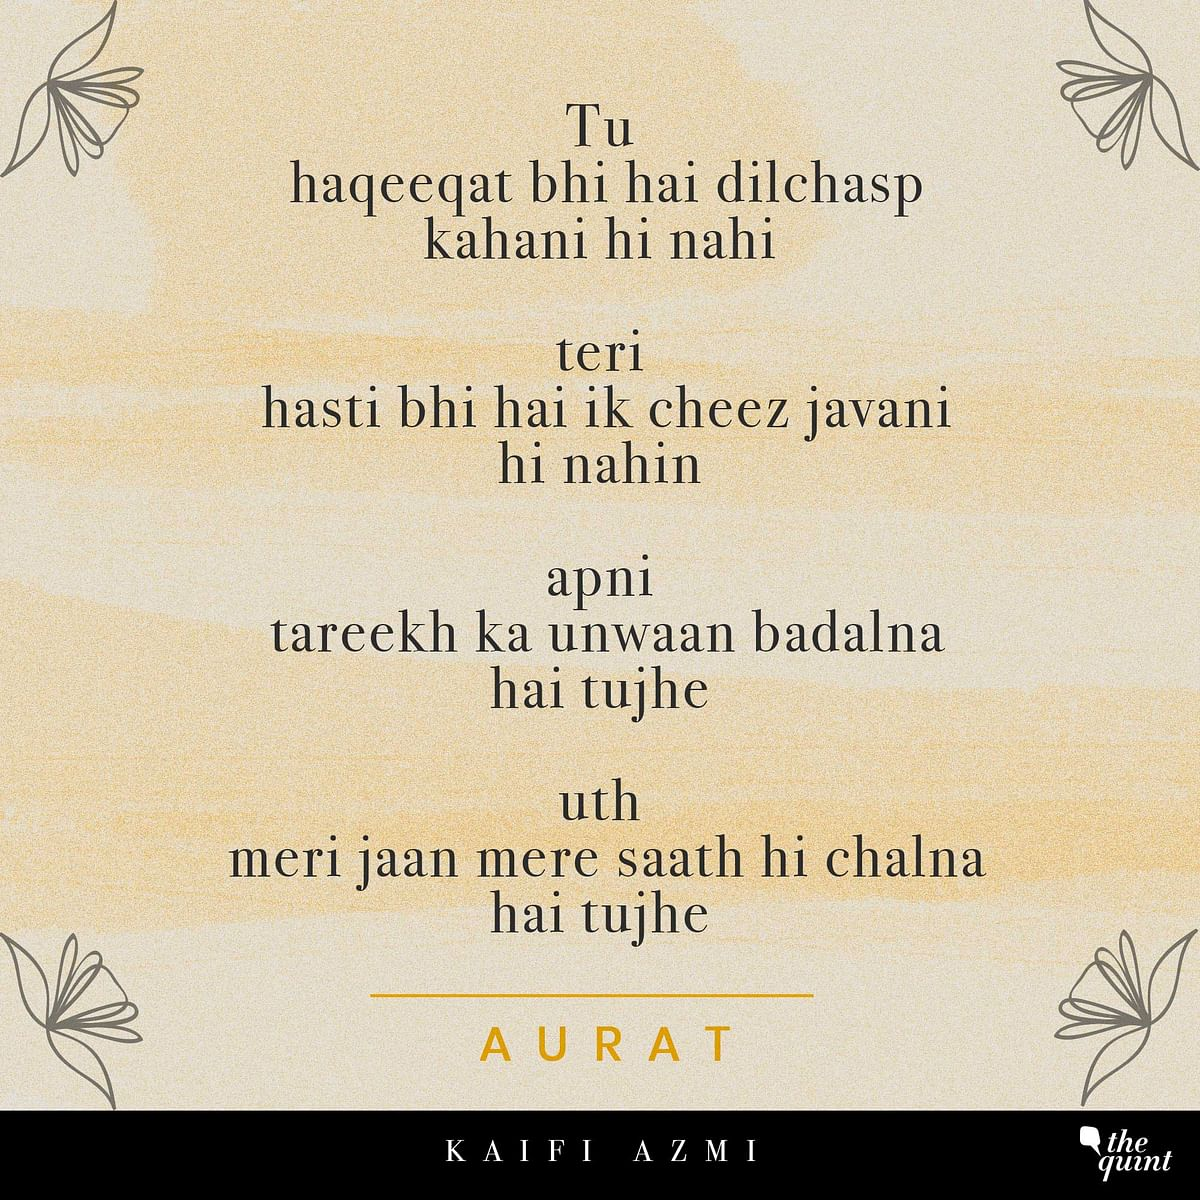 The True Legacy of Kaifi Azmi: Poetry of Romance and Revolution